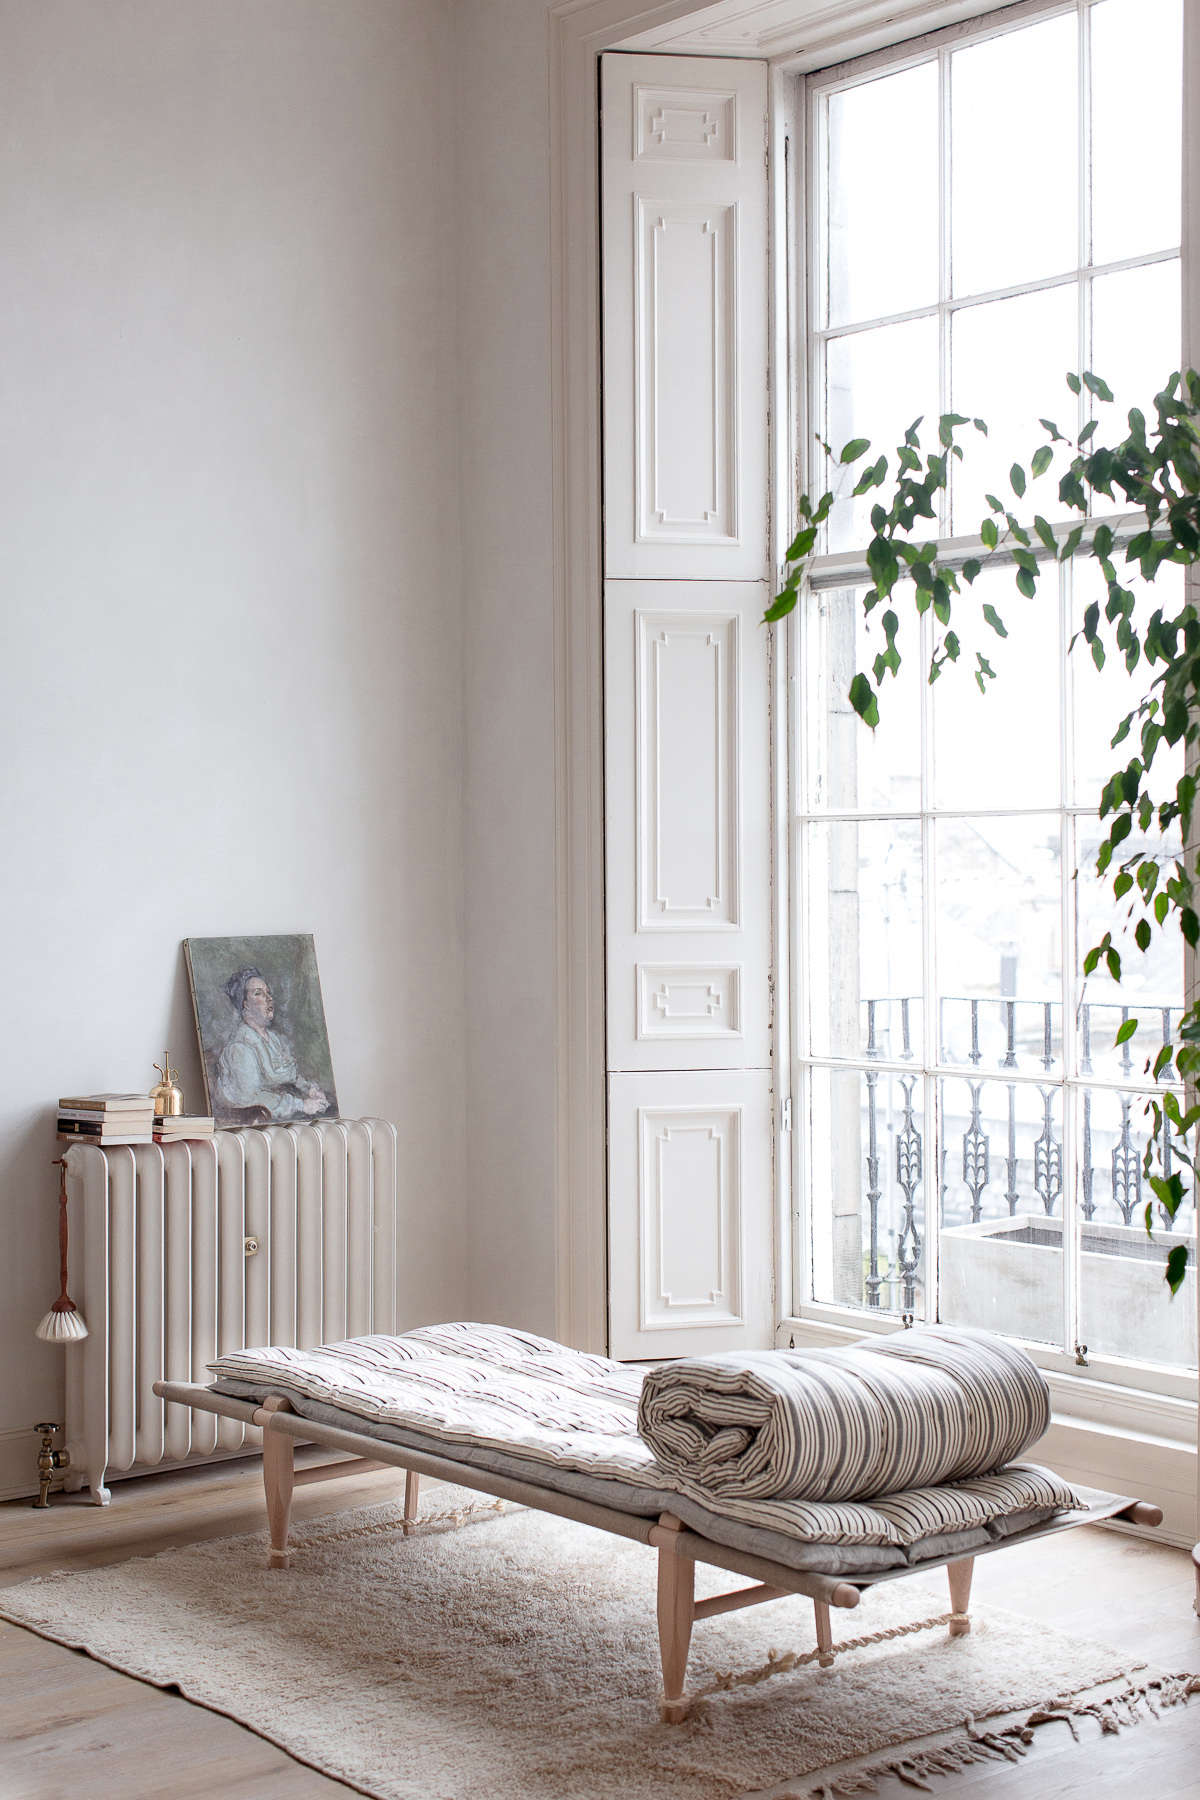 In the 60s, the townhouse was divided into four apartments. Theirs came with many original features intact but in need of care and restoration: an enormous number of details went into making the space look the way it does now. For instance, the windows were &#8